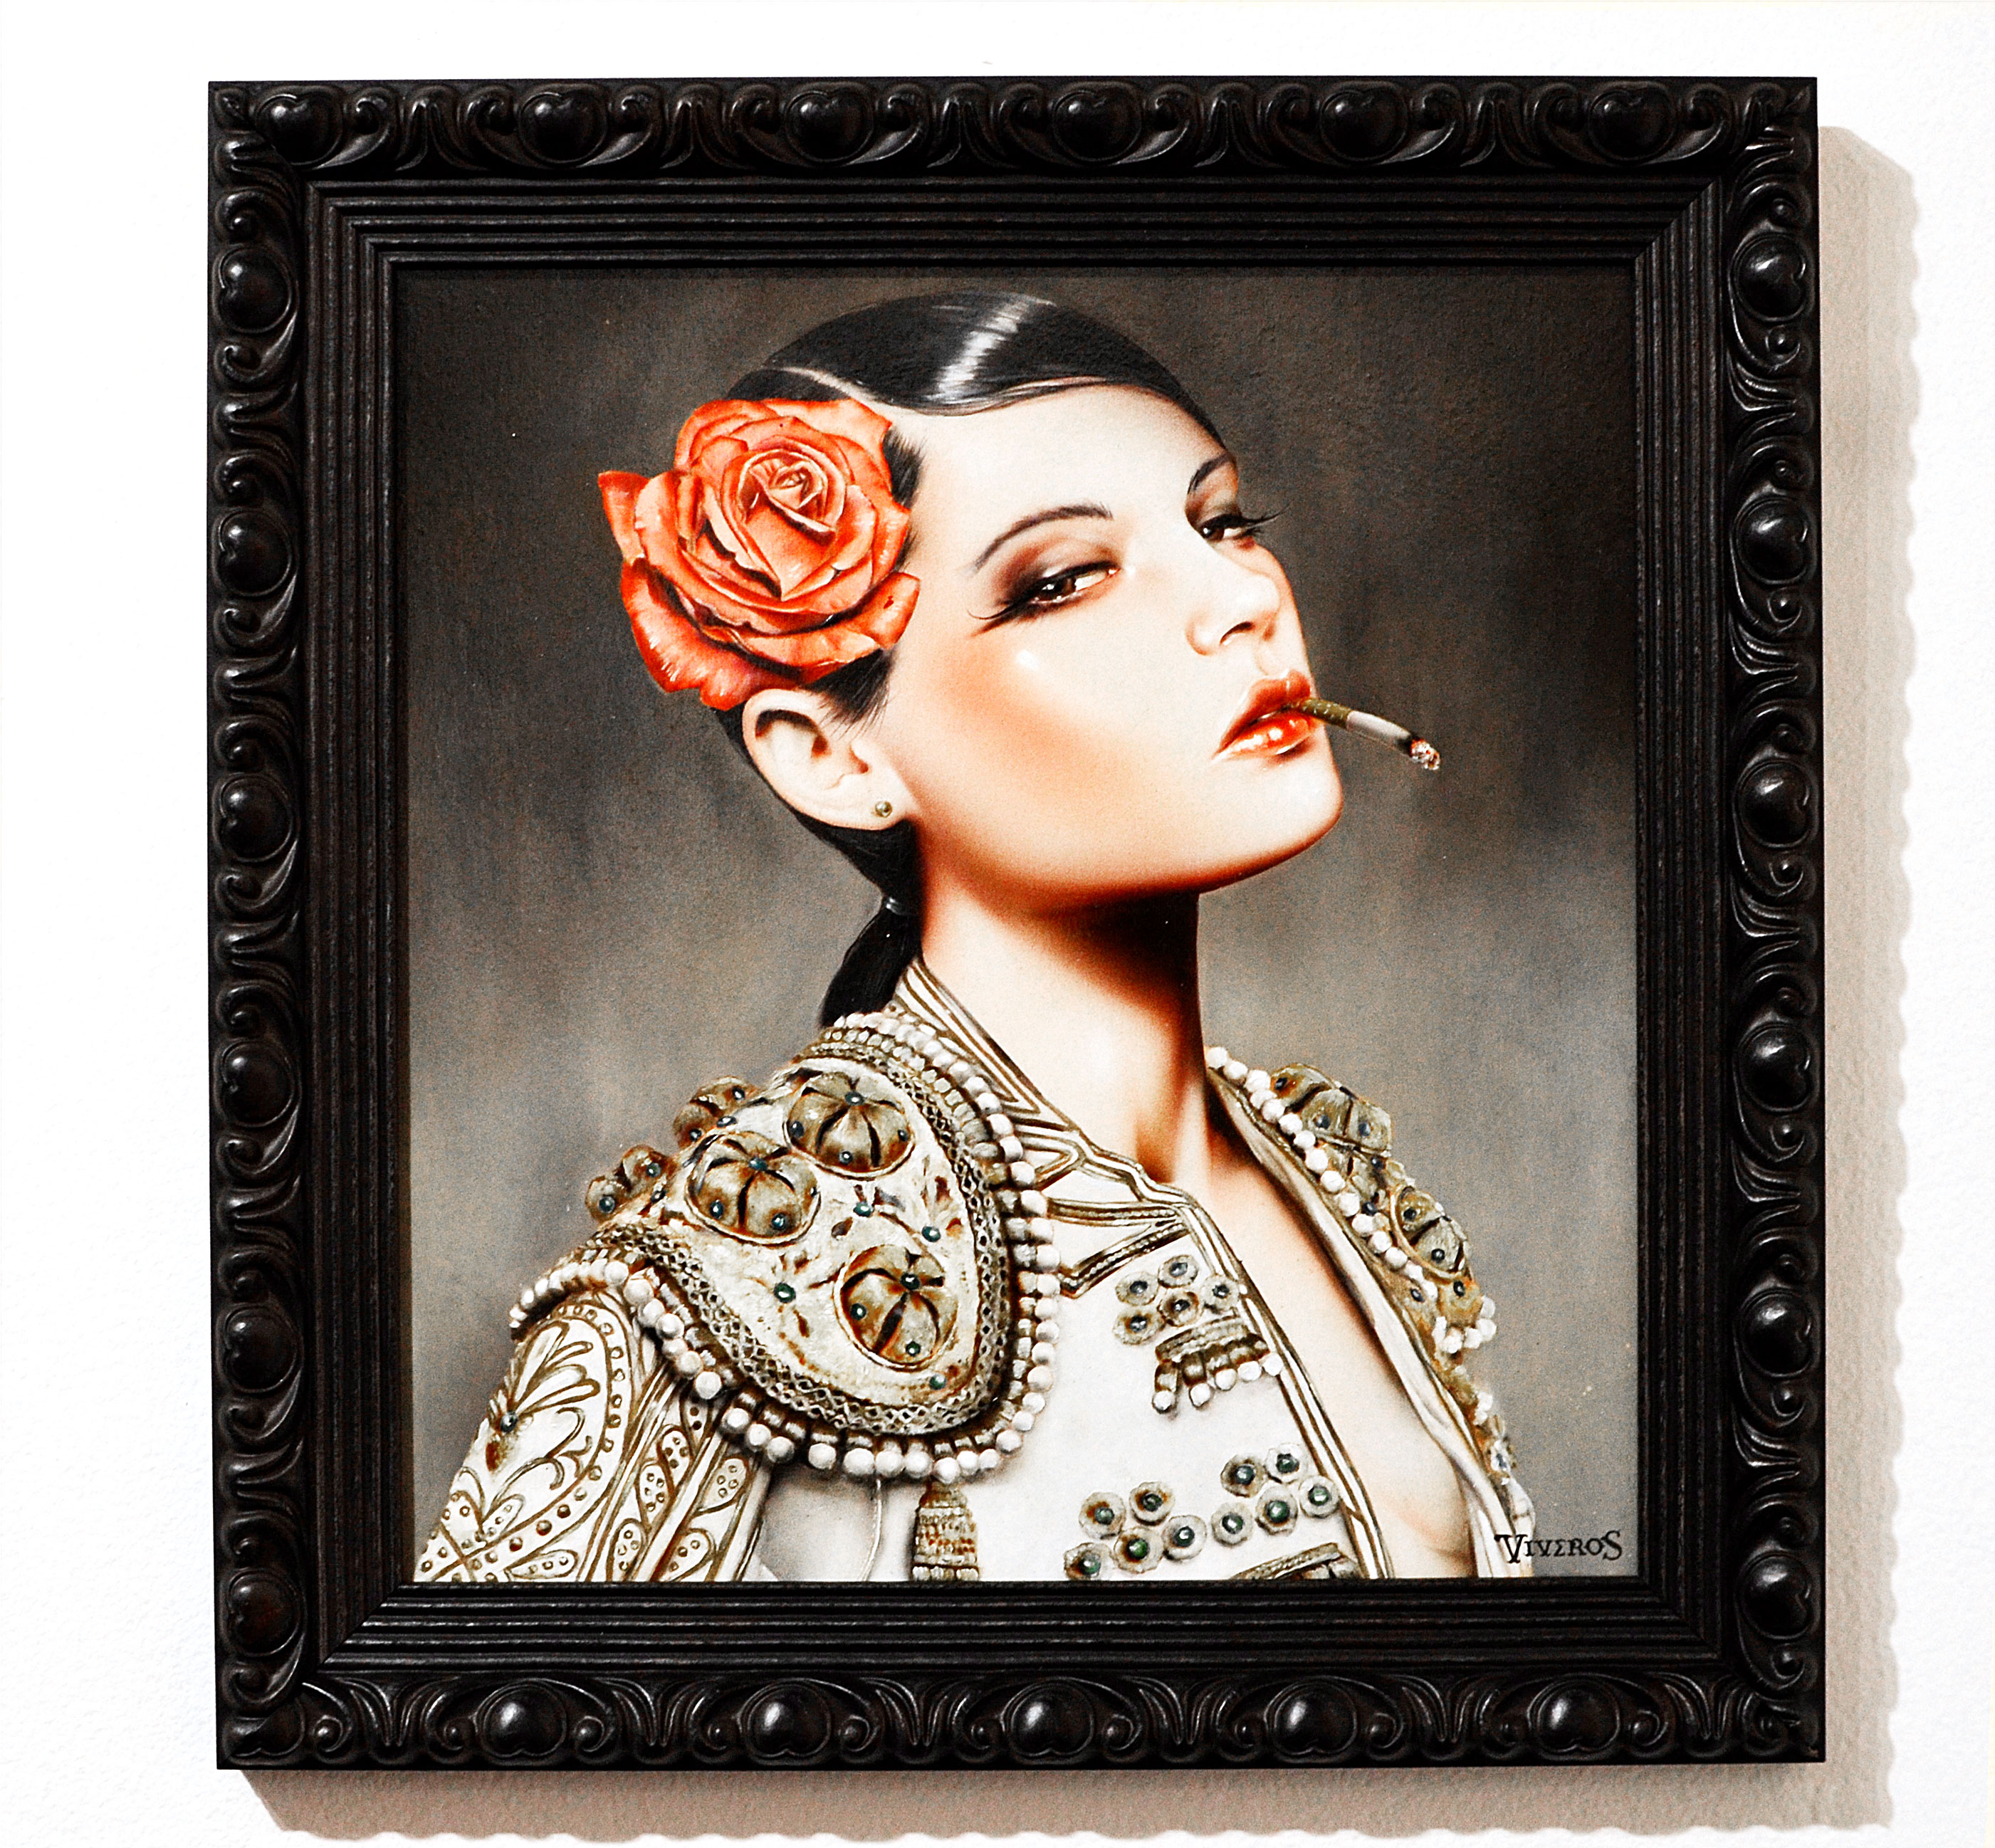 The powerful women of Brian M. Viveros